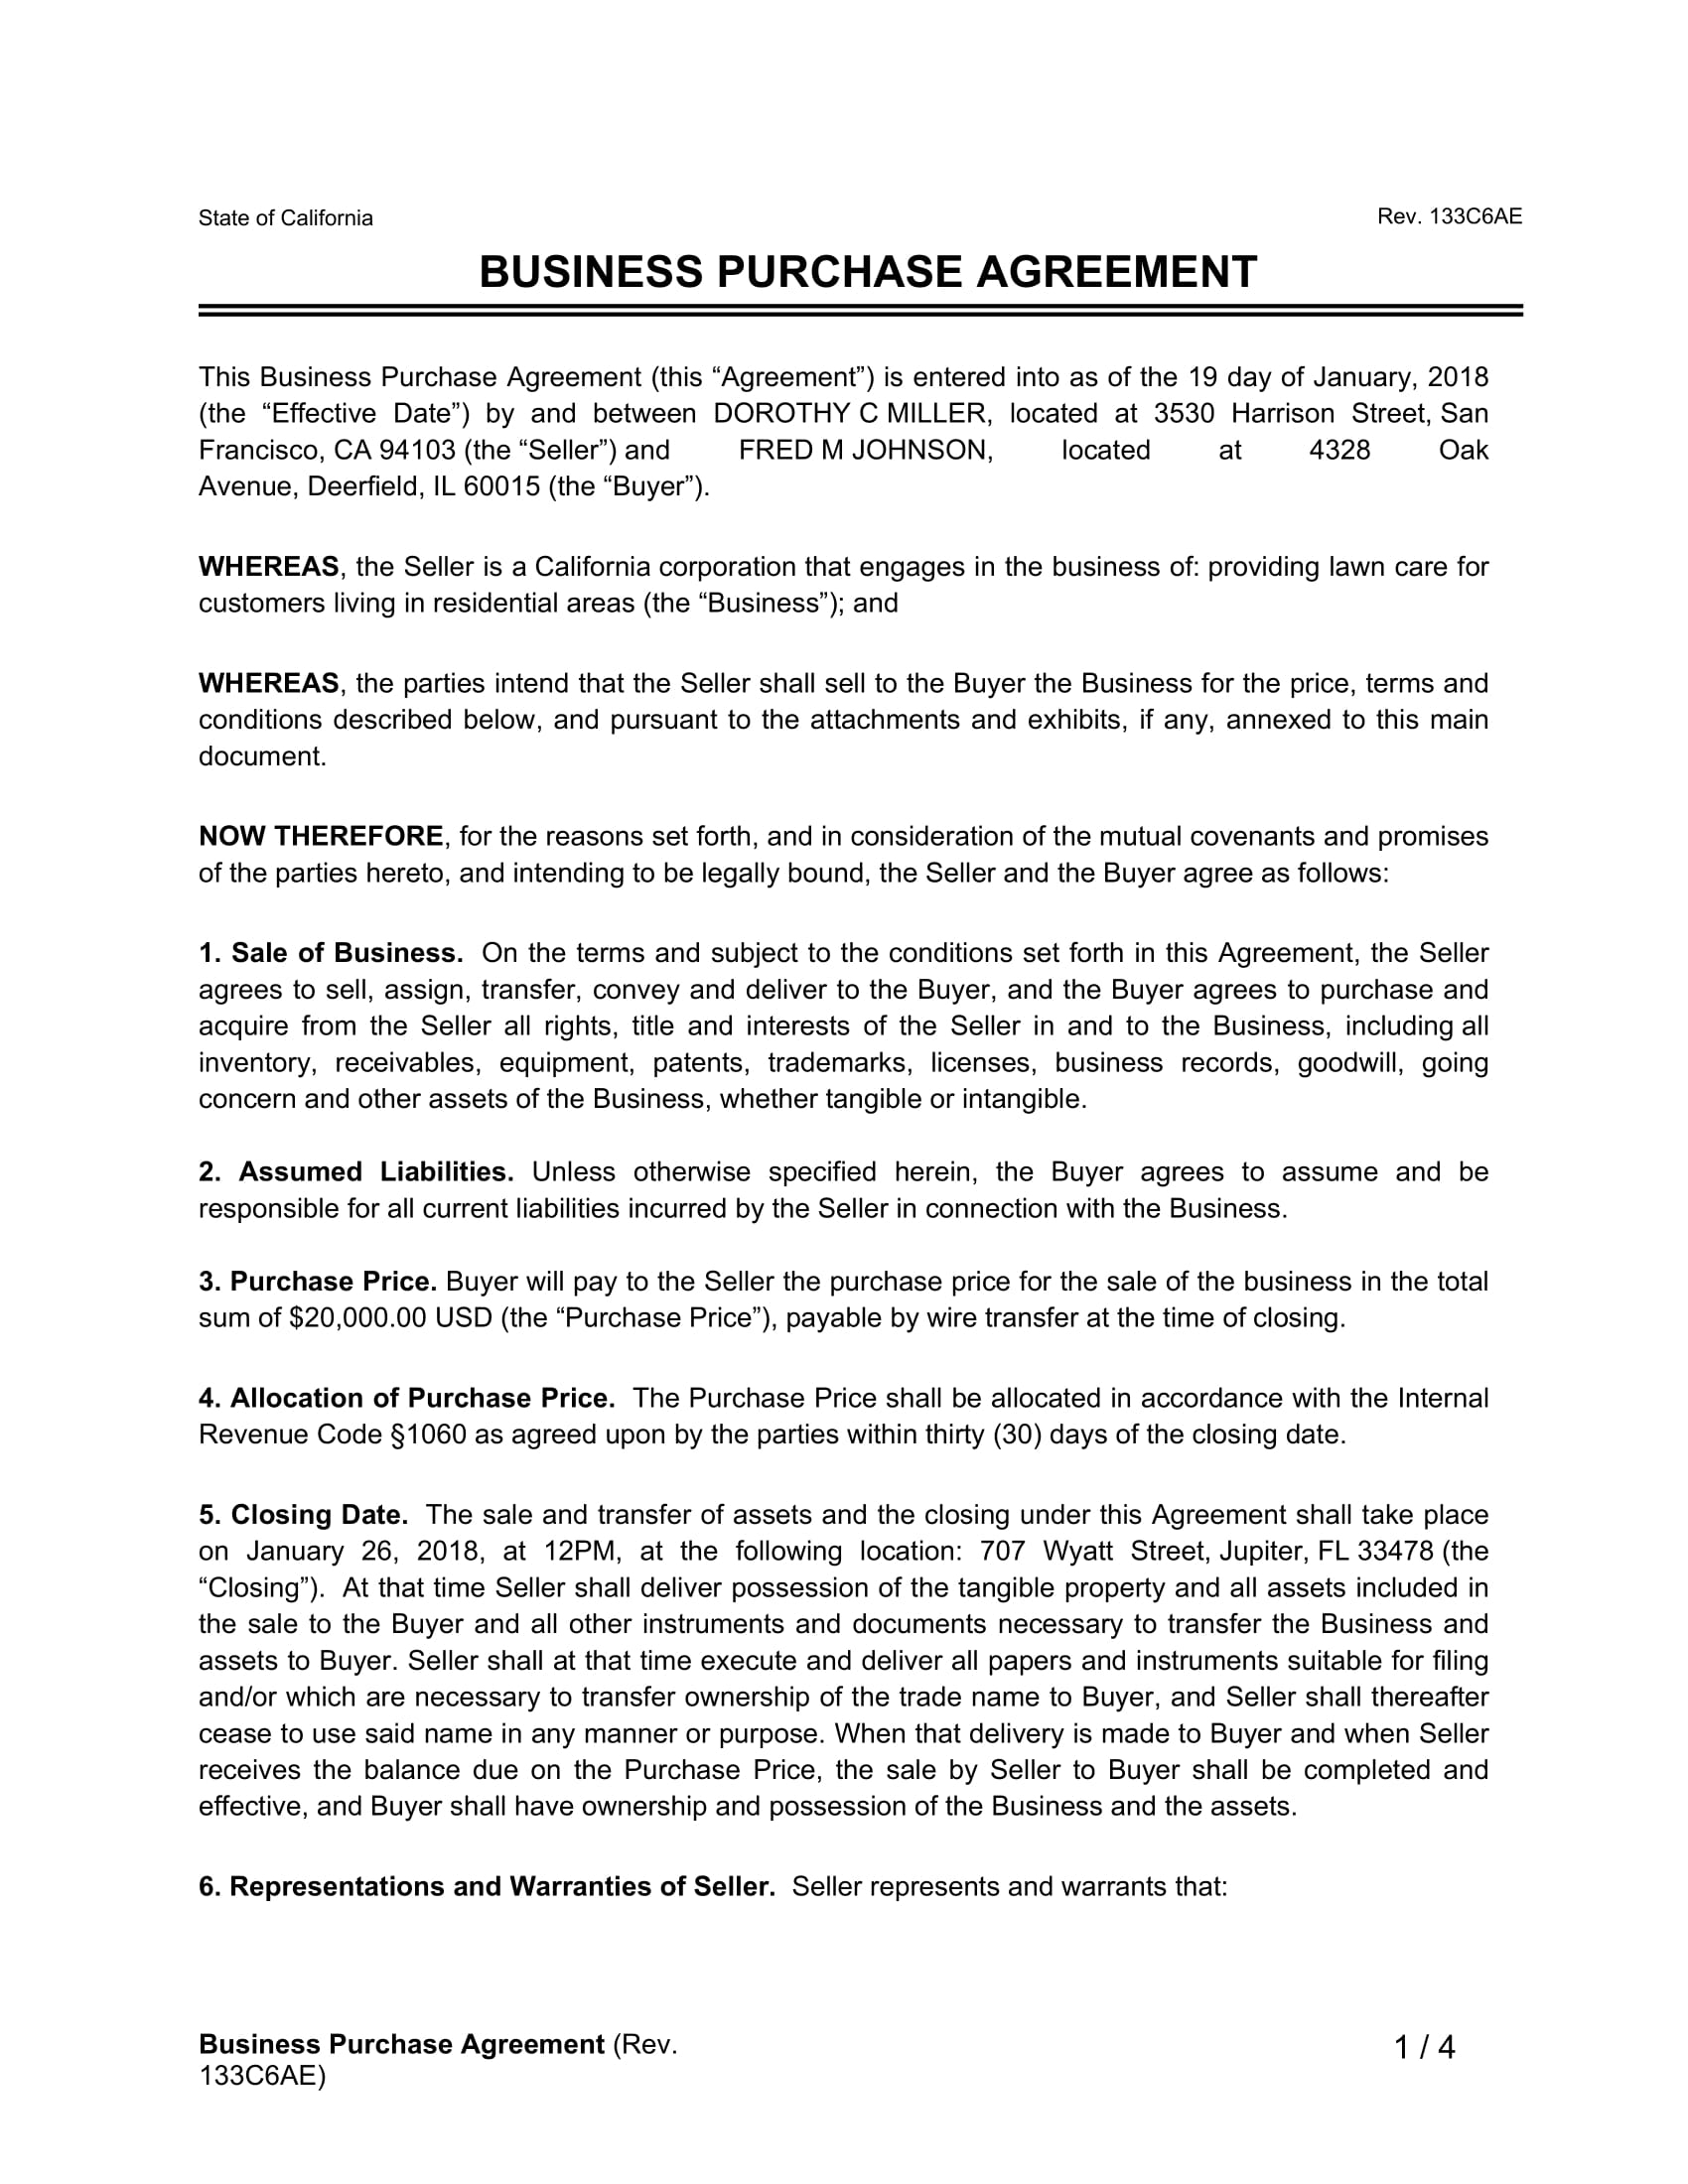 business purchase agreement example